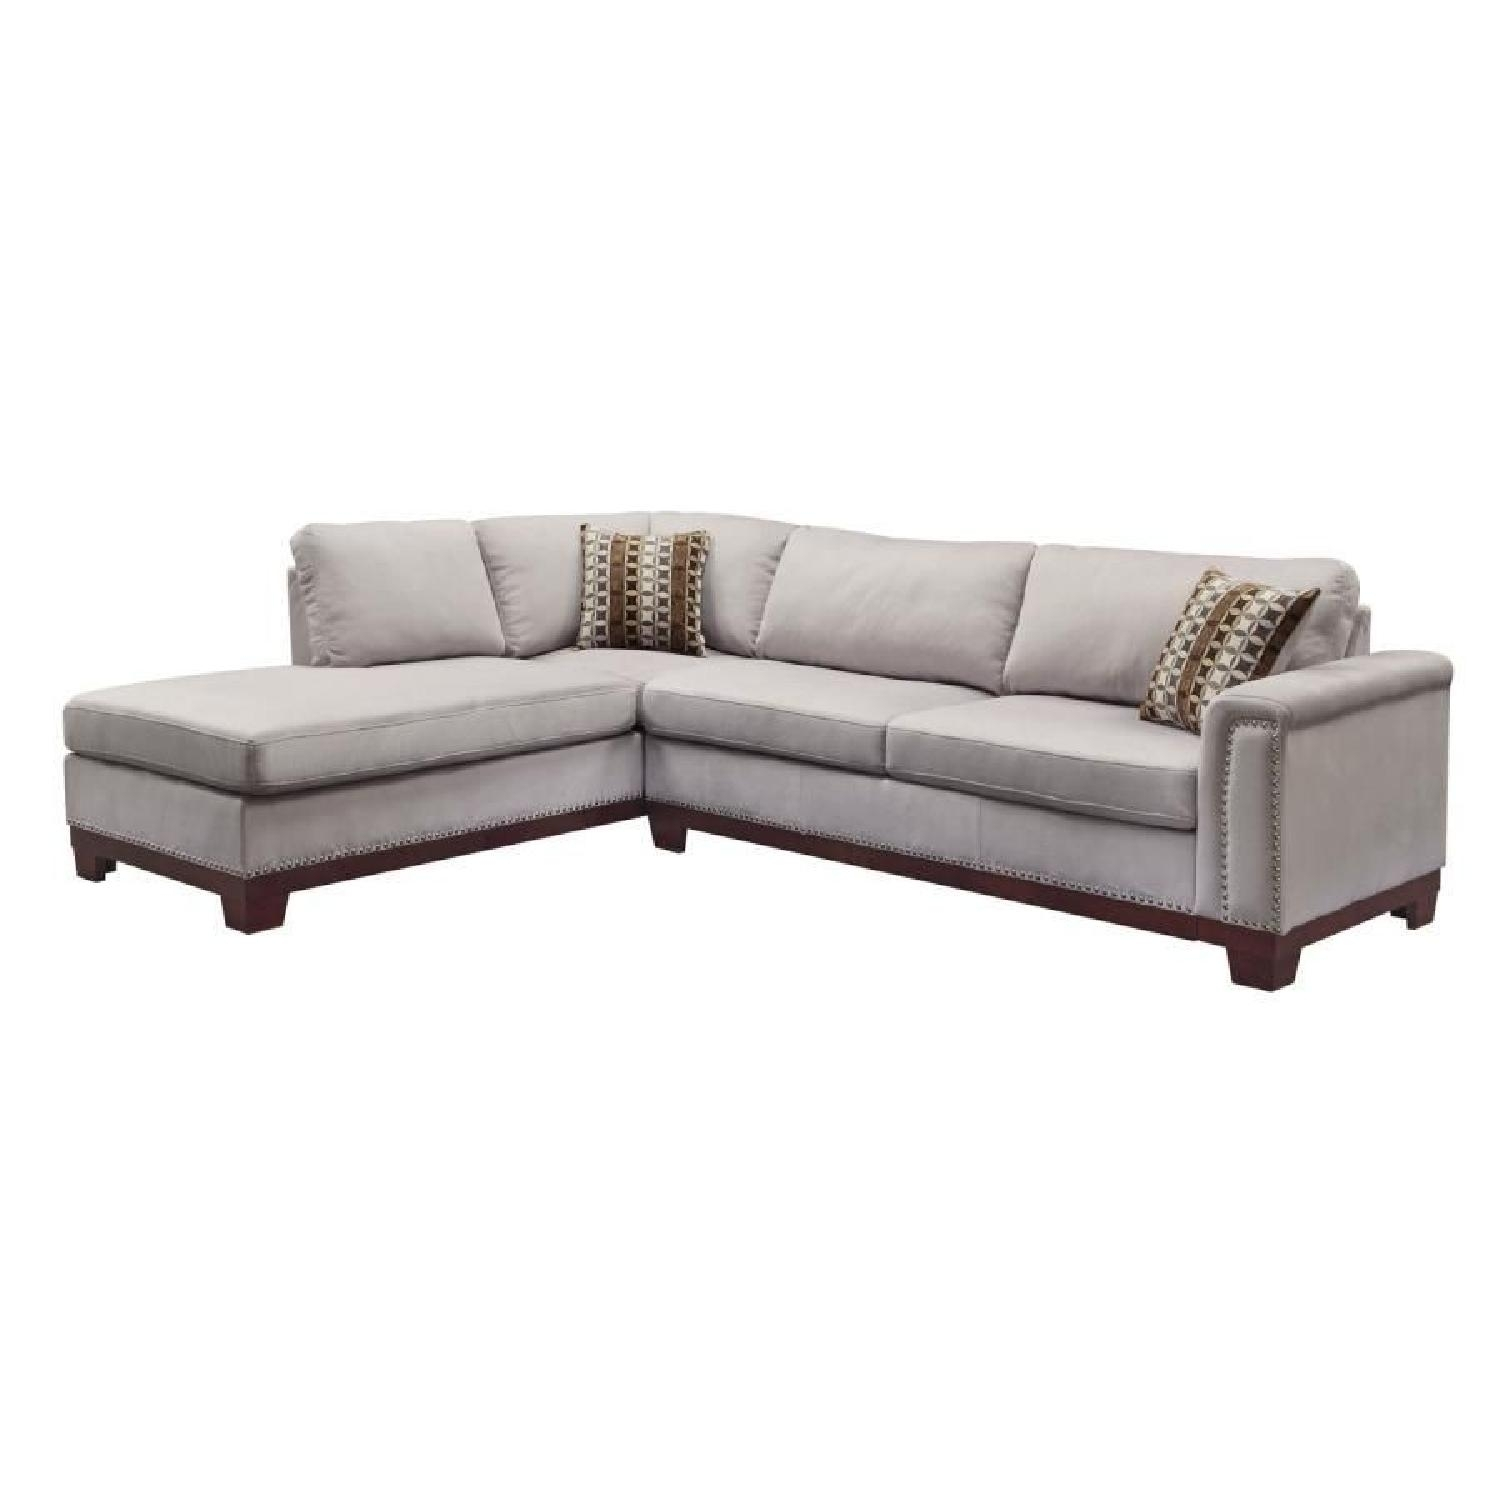 Sofa With Reversible Chaise Lounge | Home Furniture Ideas In Mcculla Sofa Sectionals With Reversible Chaise (View 30 of 30)